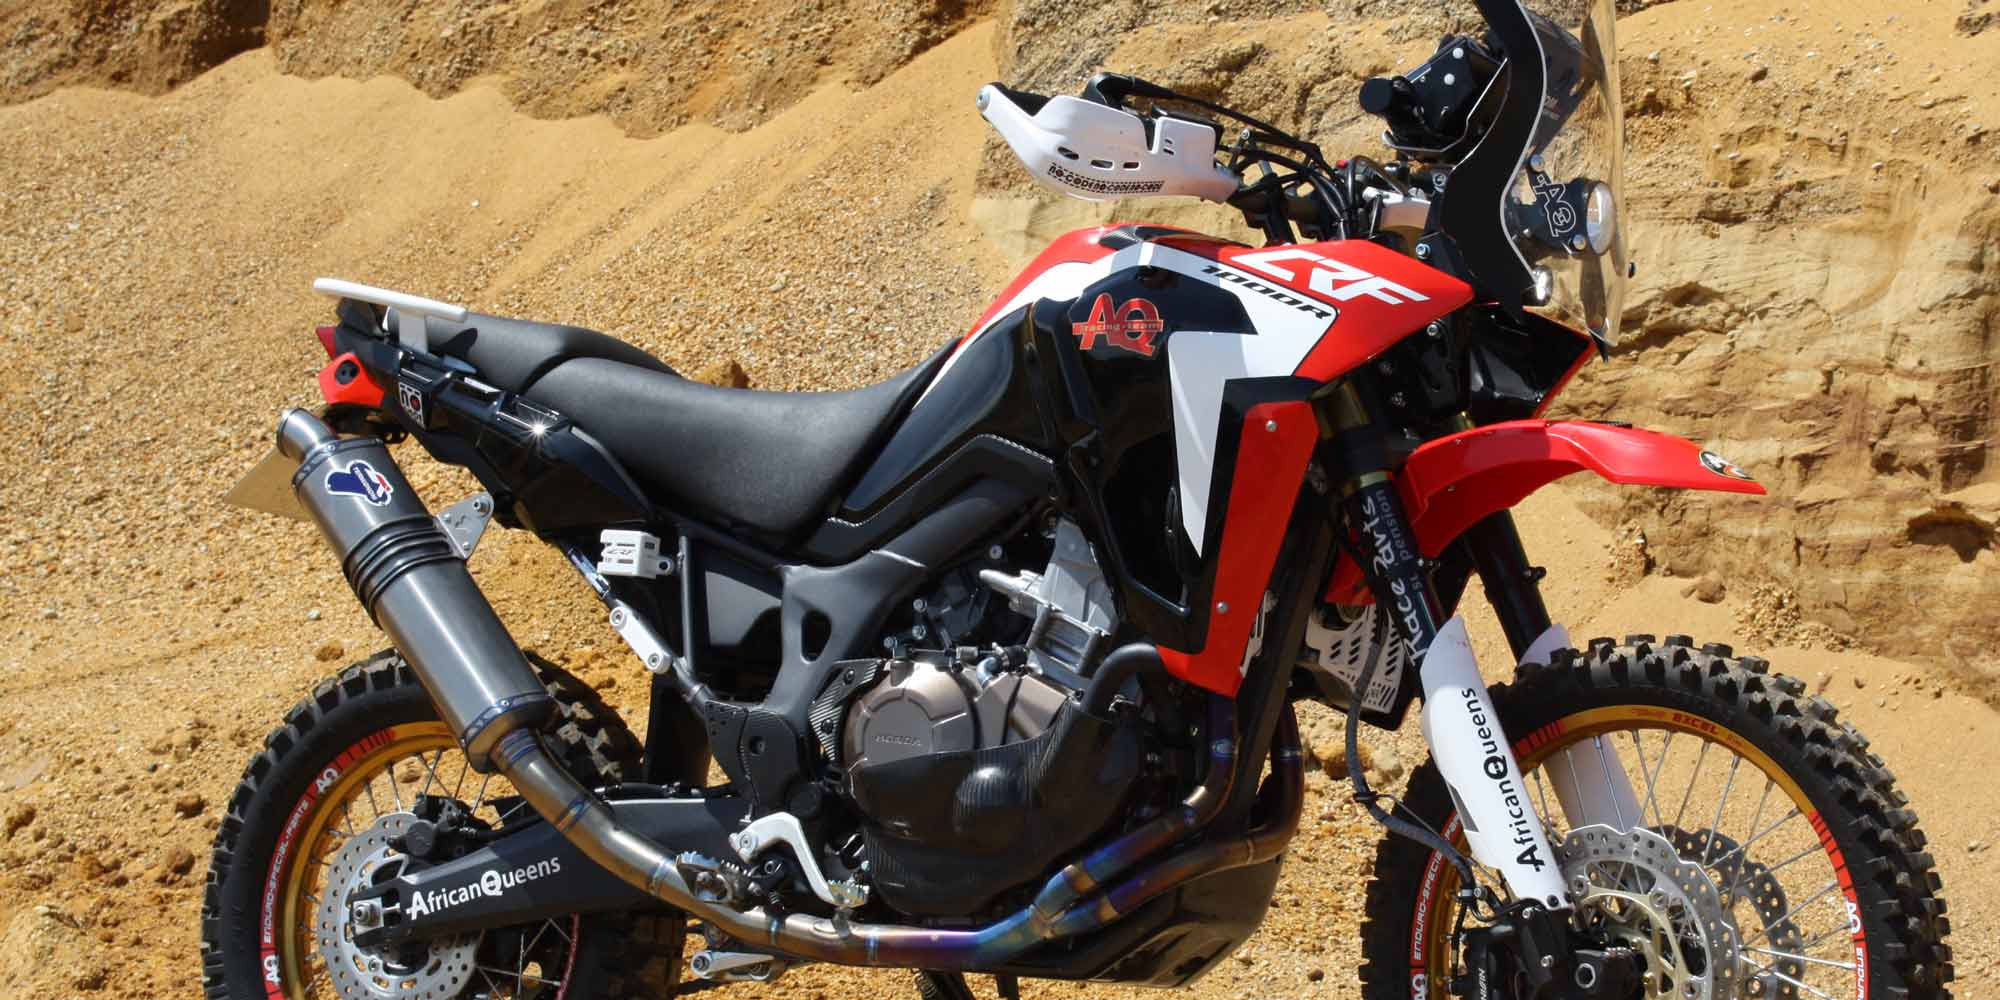 african queens enduro special parts aq honda crf1000r africa twin. Black Bedroom Furniture Sets. Home Design Ideas